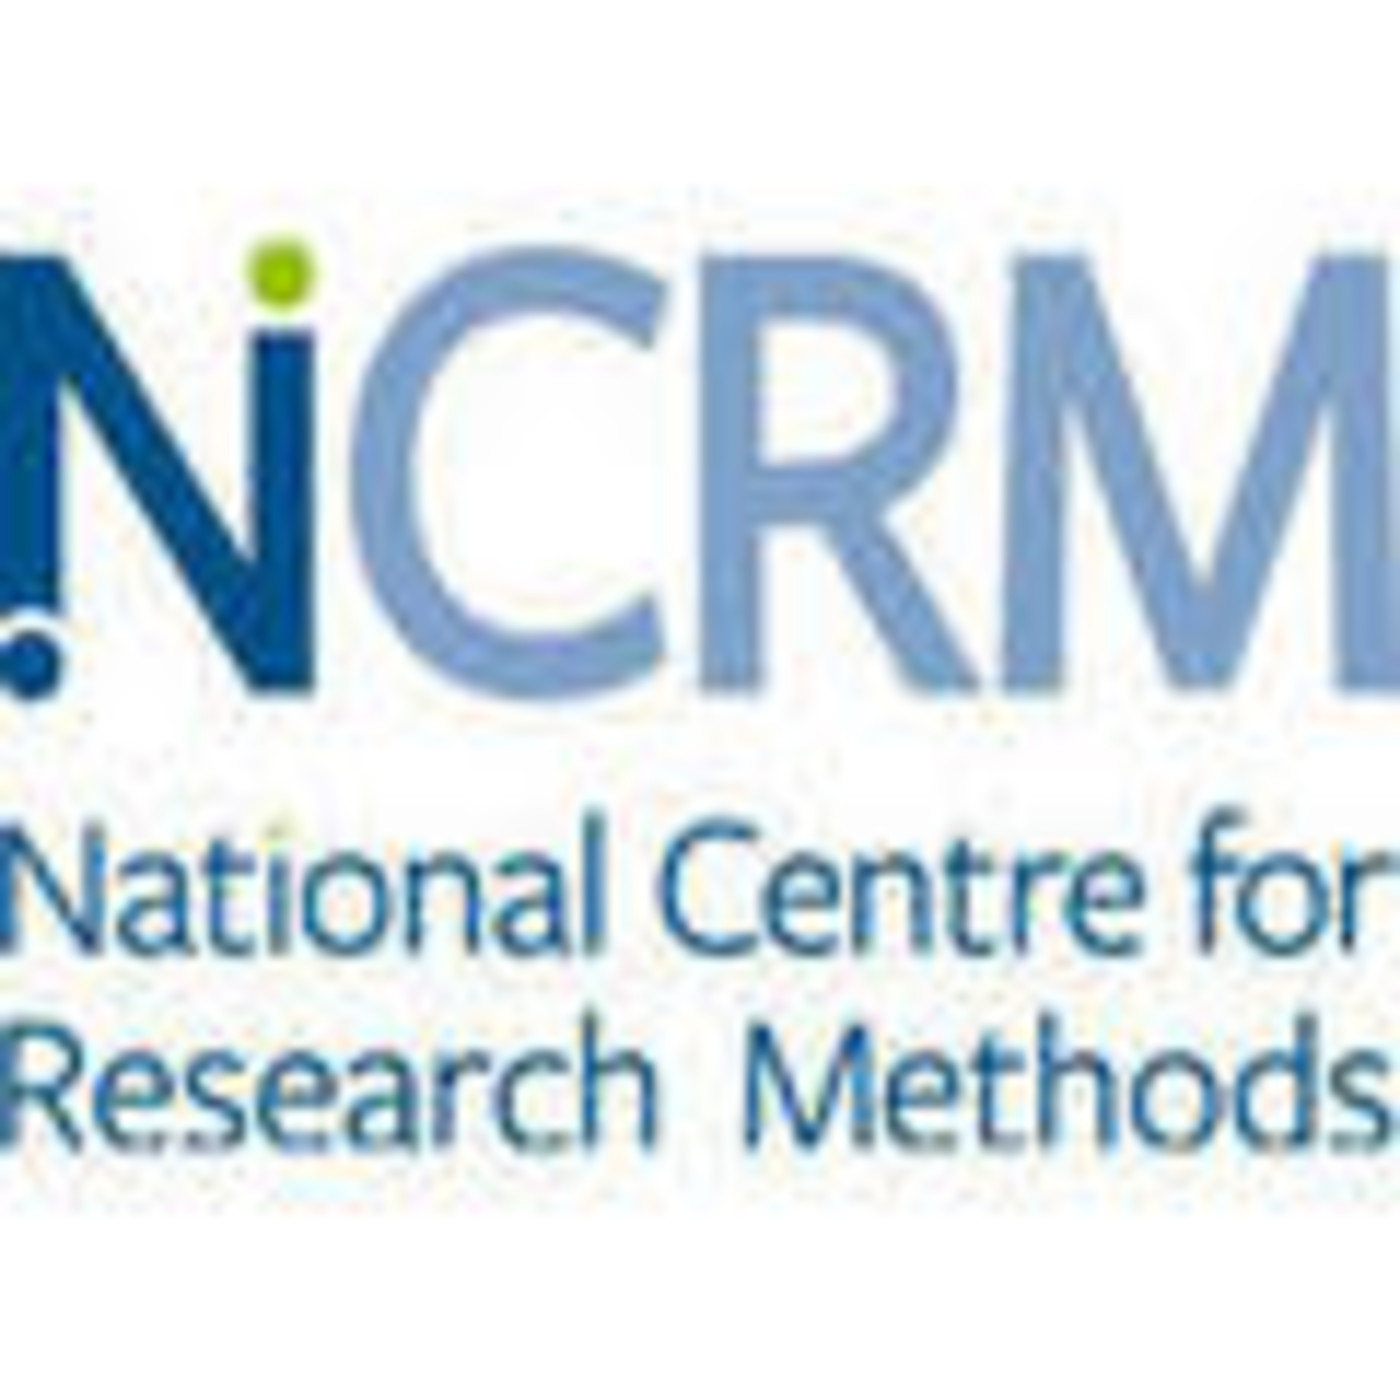 National Centre for Research M